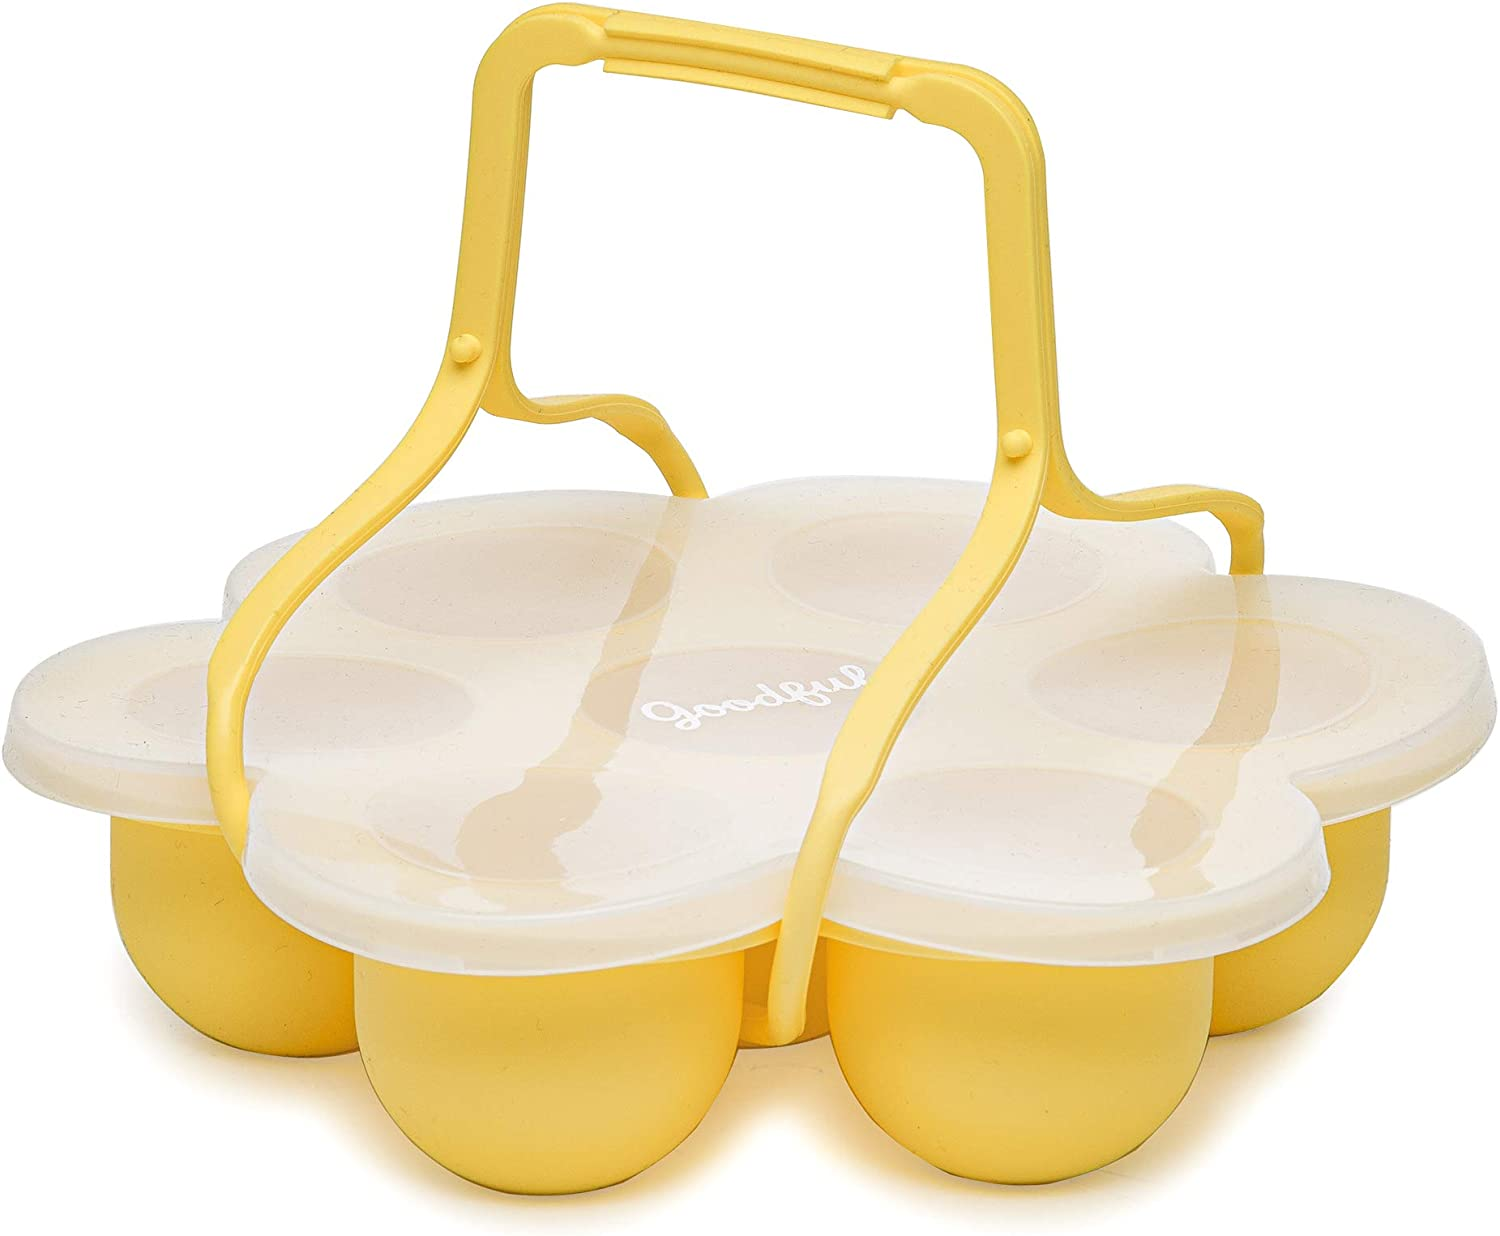 Goodful Premium Silicone Egg Bites Mold Accessories for Instant Pot, Ninja Foodi & Other Pressure Cookers with Handle and Lid, Dishwasher Safe, 7-Cup, Yellow